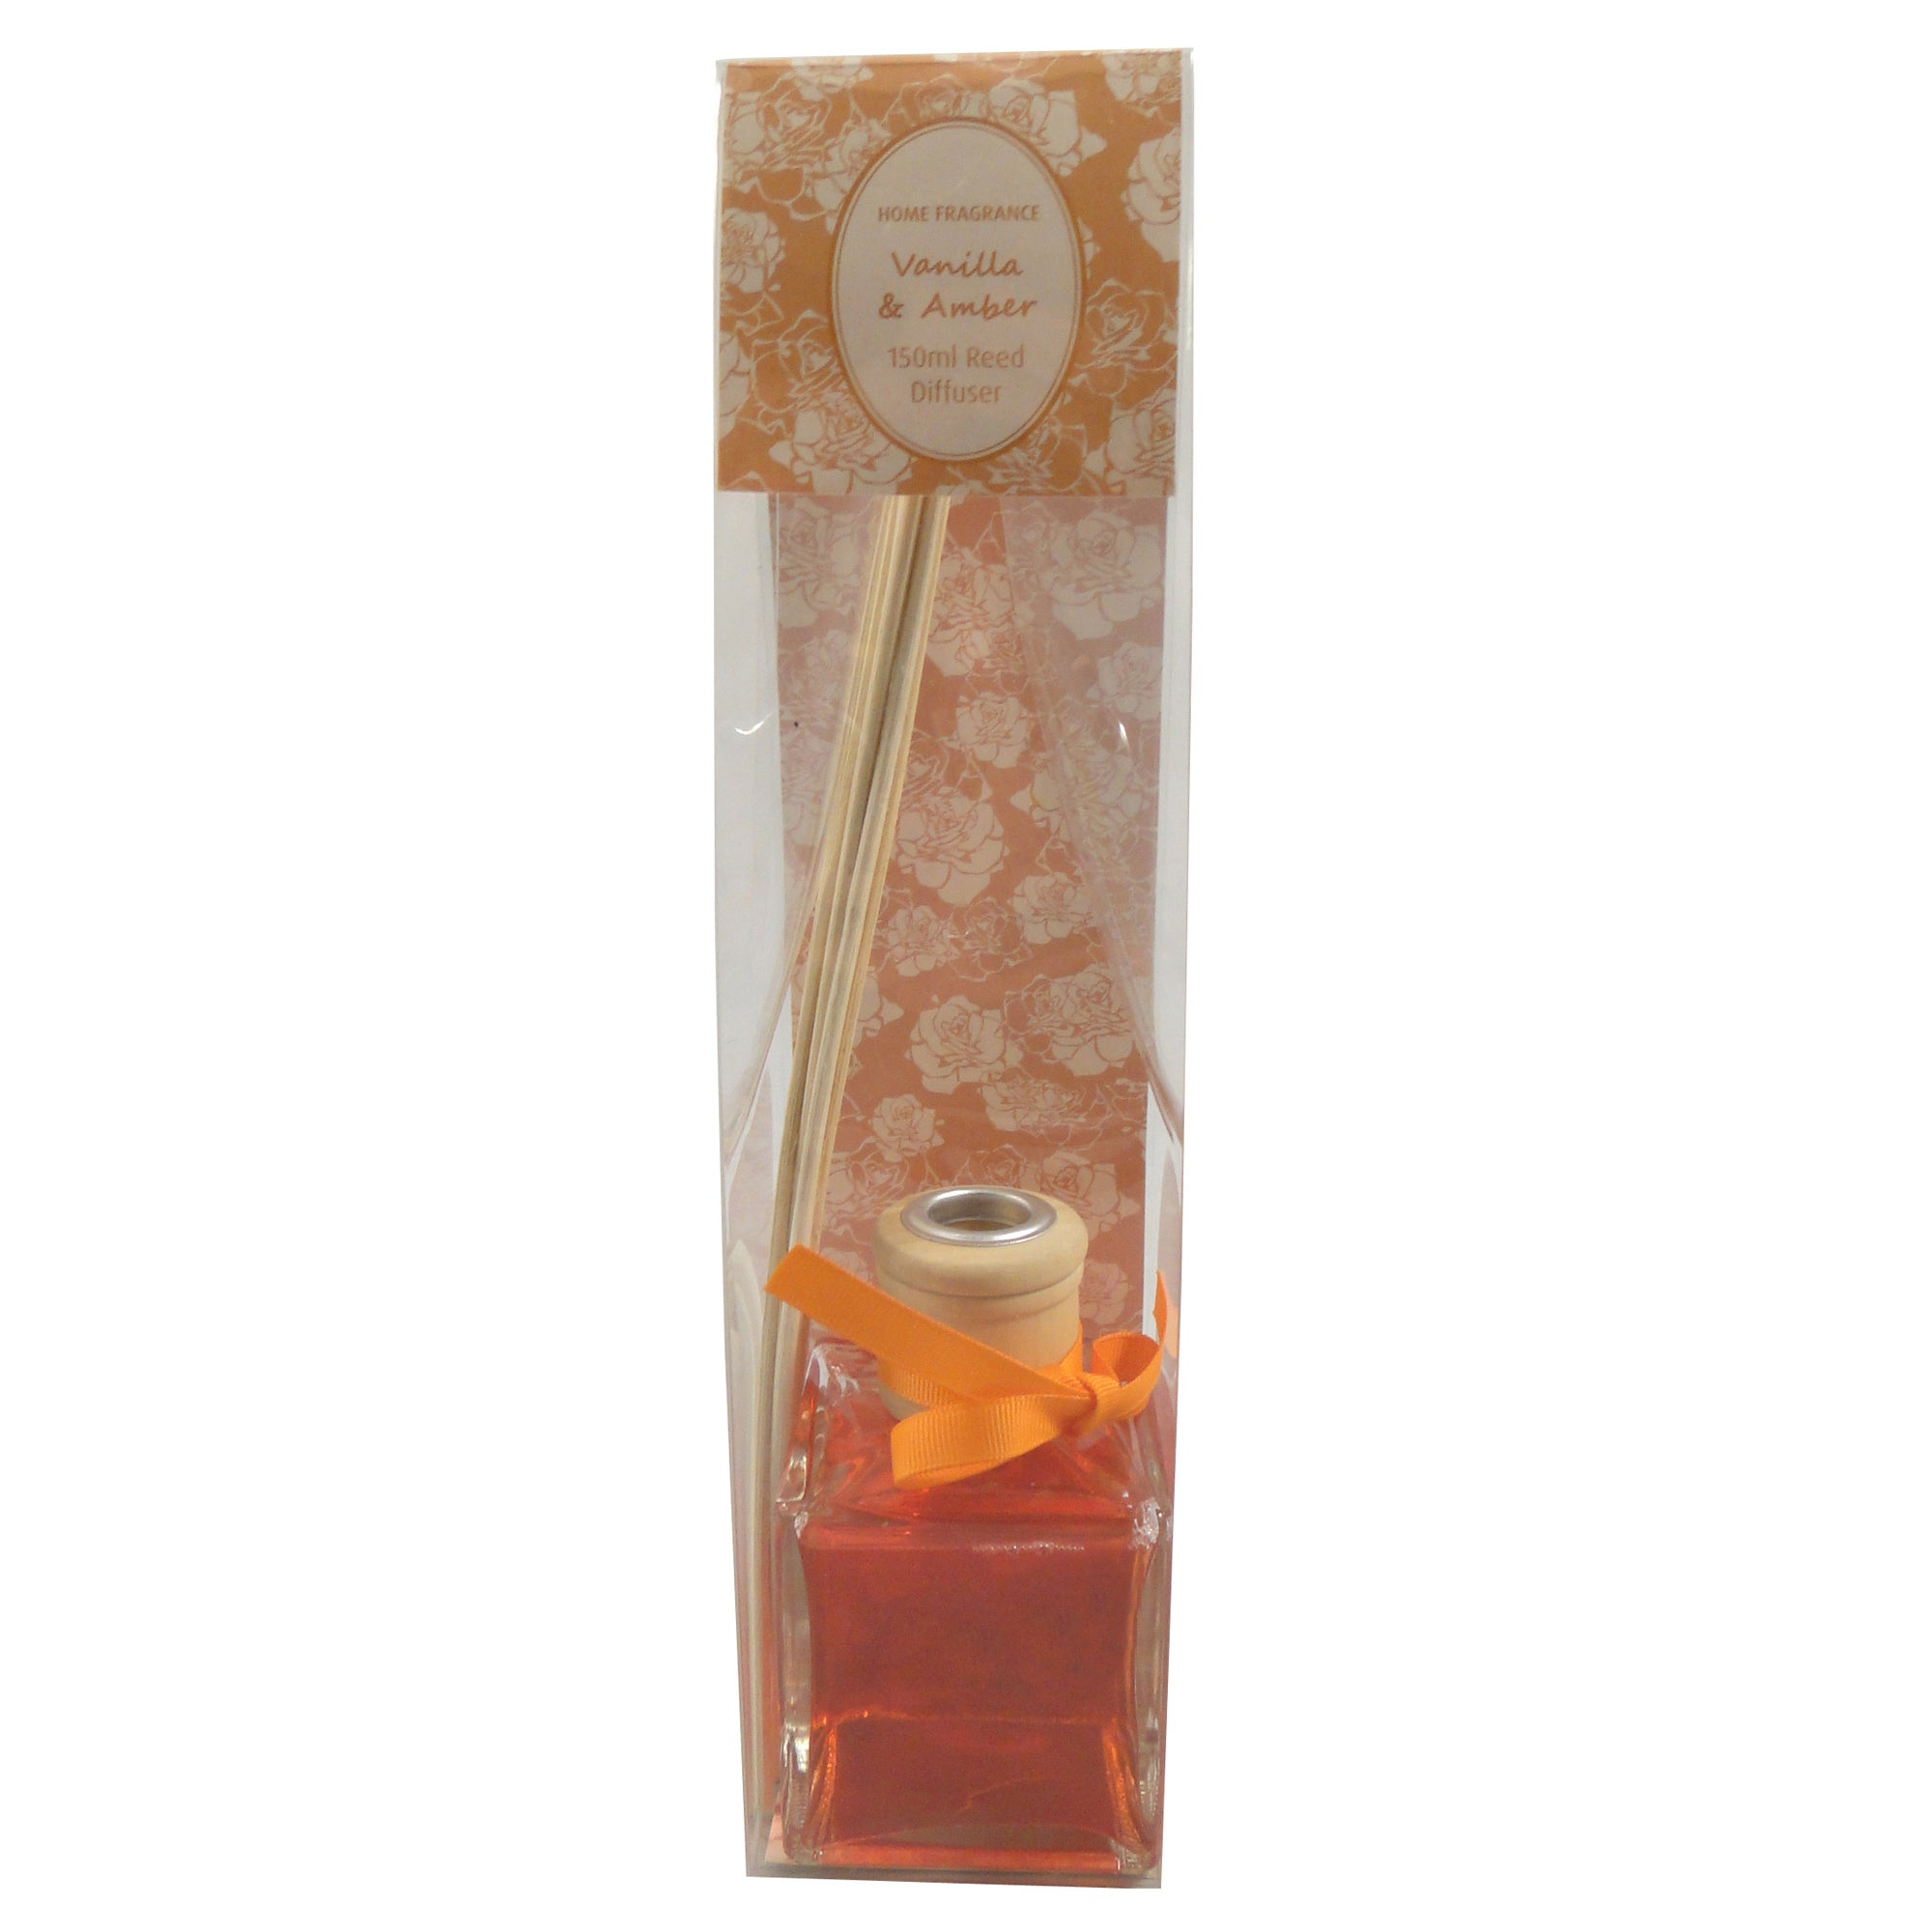 Home Fragrance Vanilla and Amber 150ml Reed Diffuser